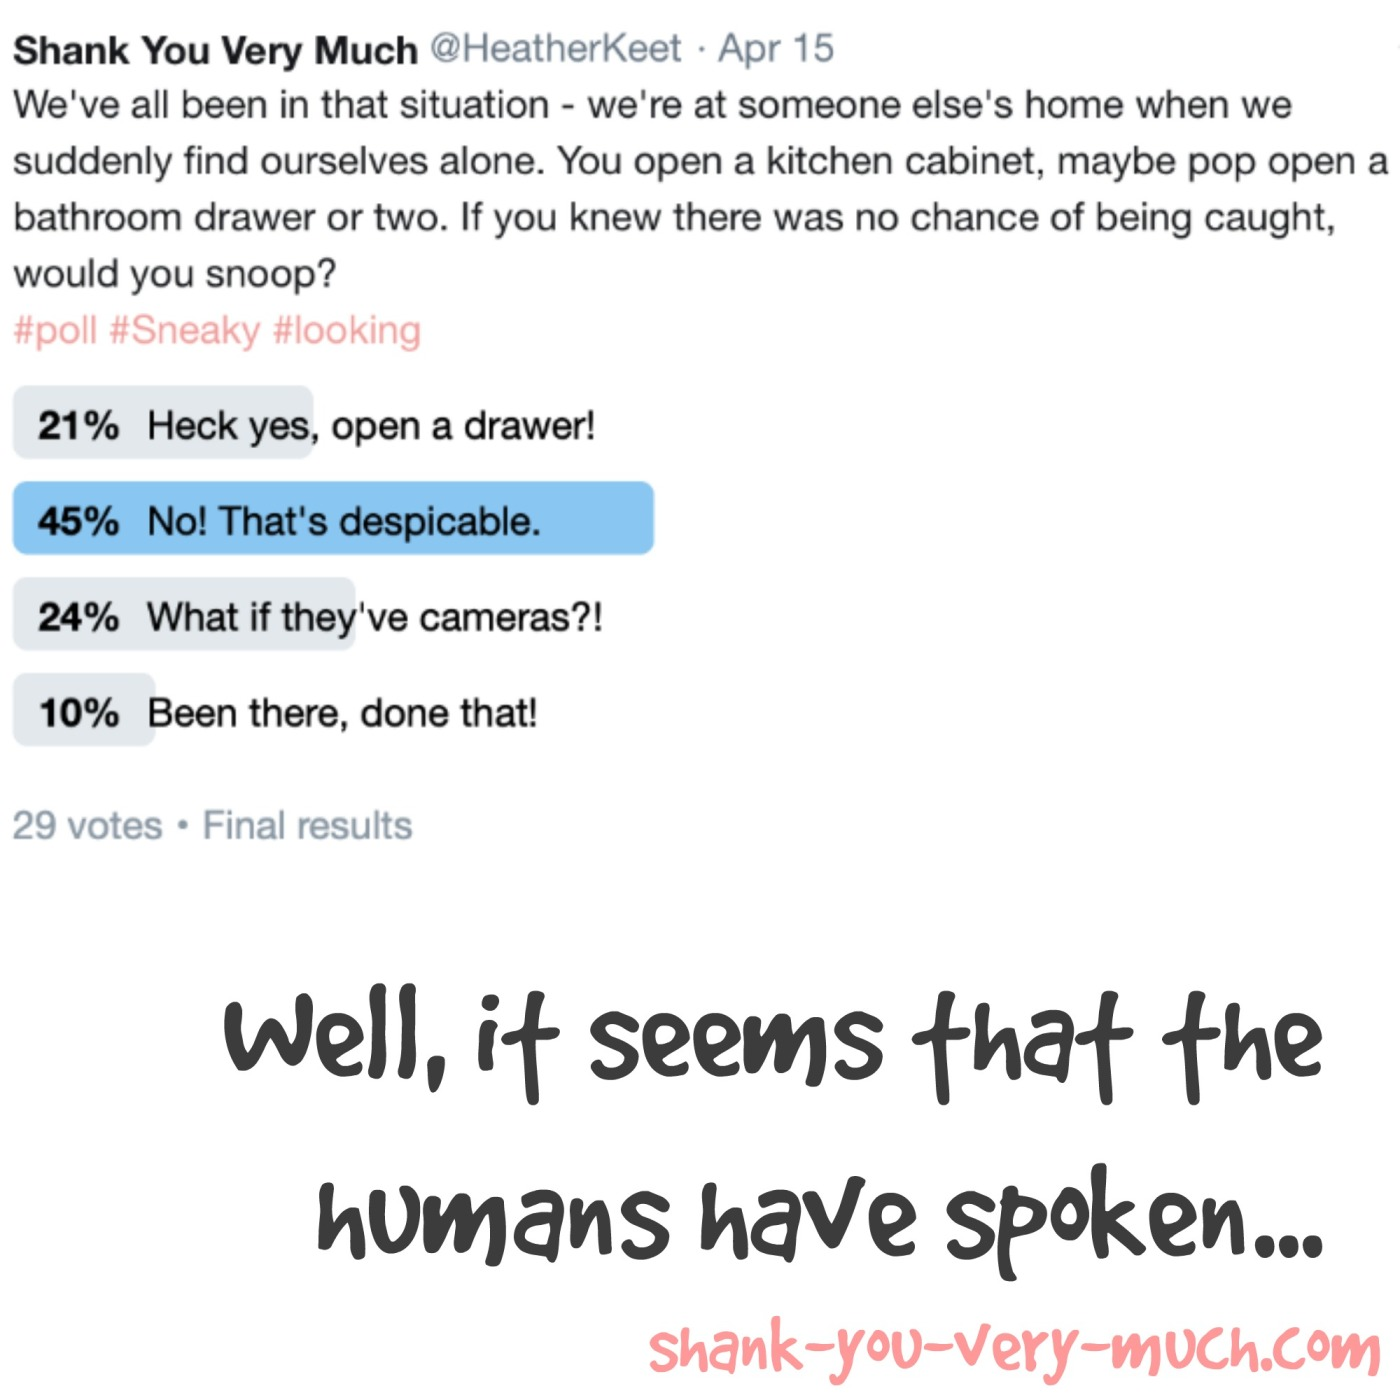 A poll showing that people think snooping is despicable